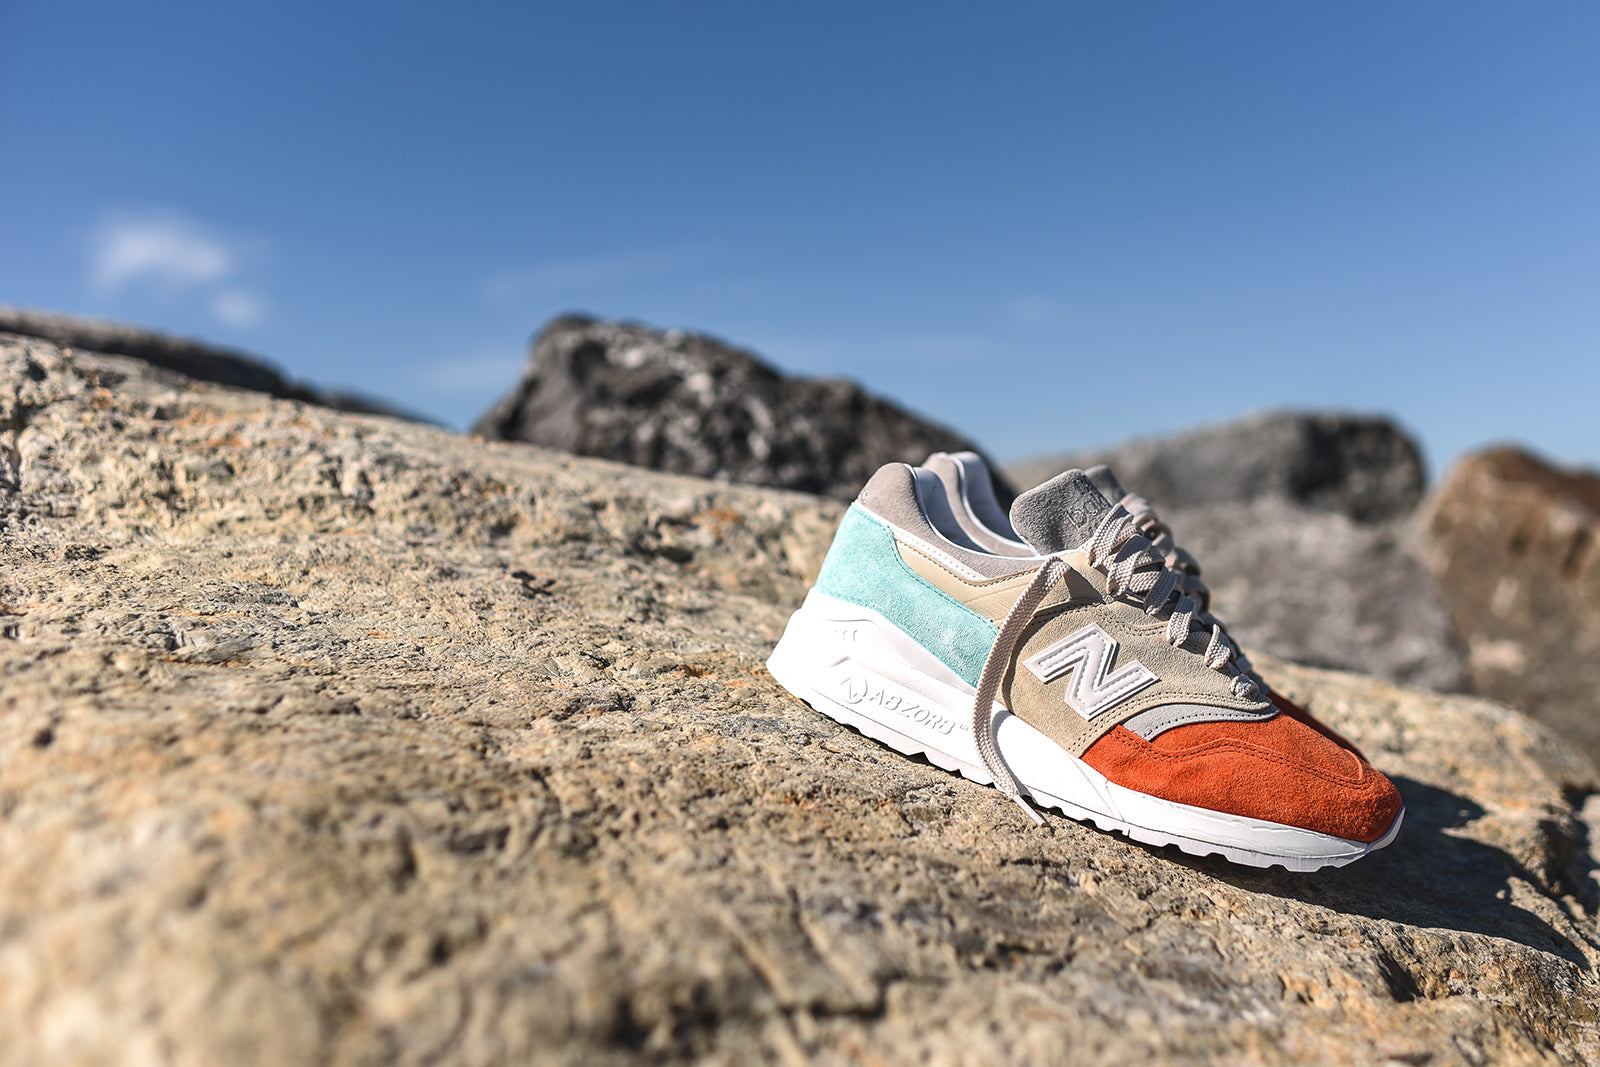 free shipping d8597 58158 Ronnie Fieg x New Balance Mykonos 997.5 Collection – Kith